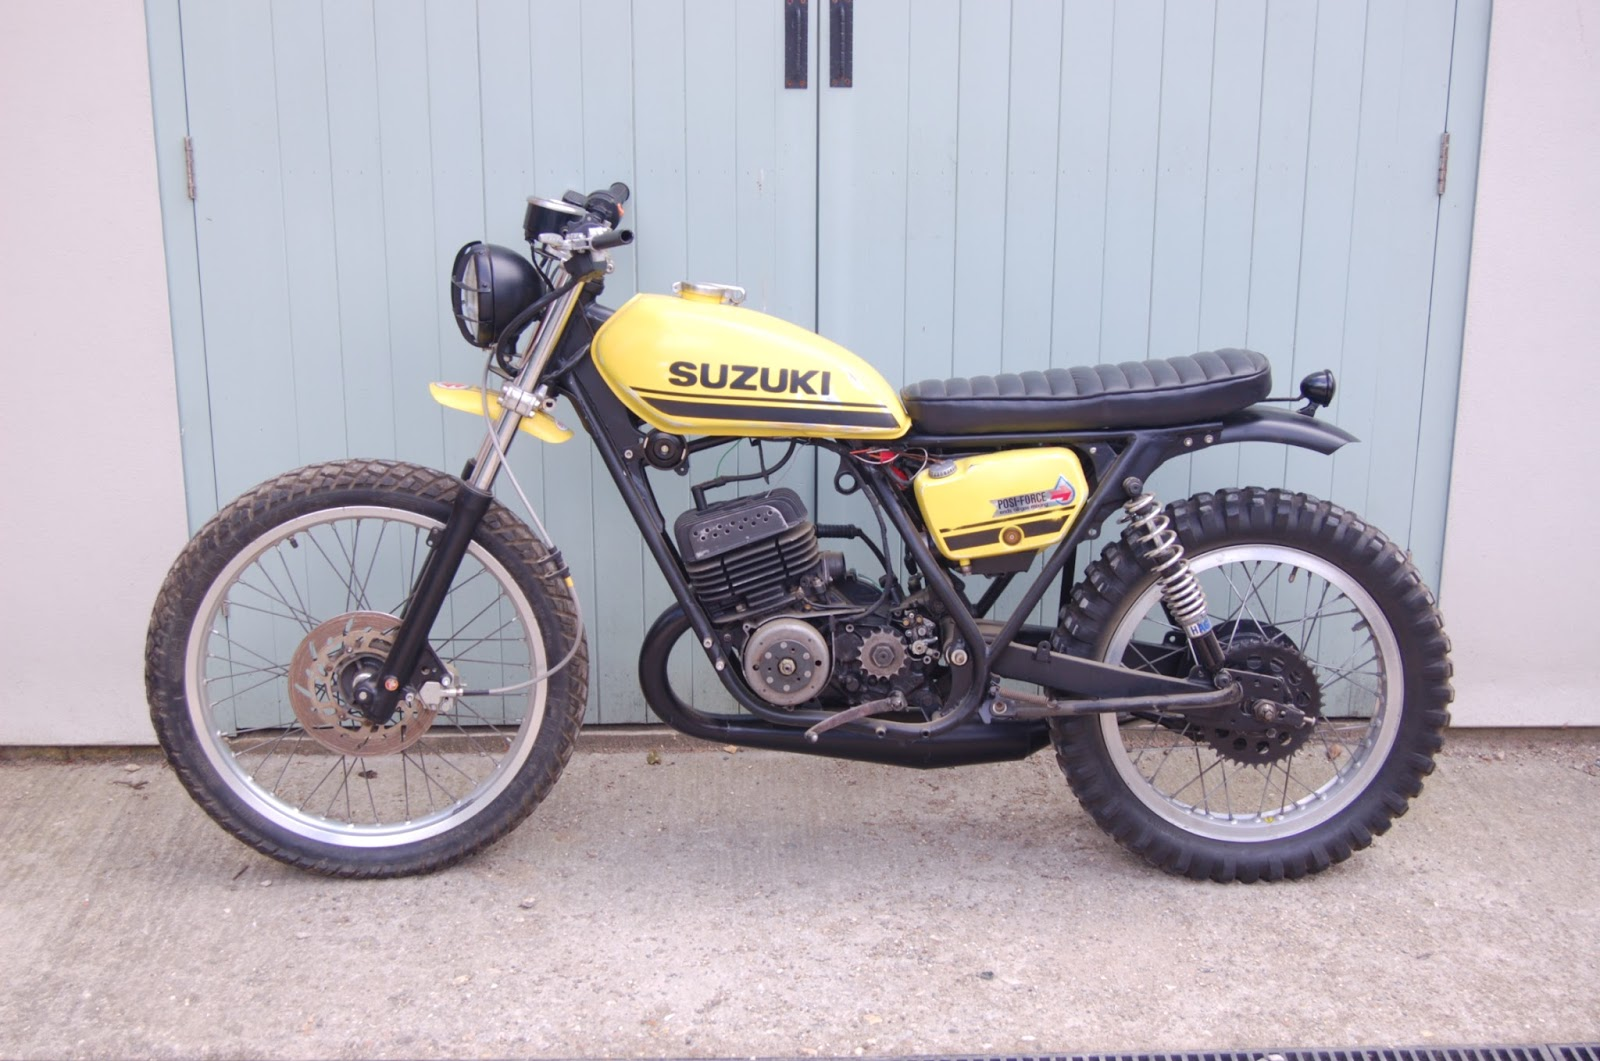 the ts250 project i d like to swap it for a complete mot d and running but cosmetically challenged bike 250 plus cc if a smoker 400 plus cc if a four stroke